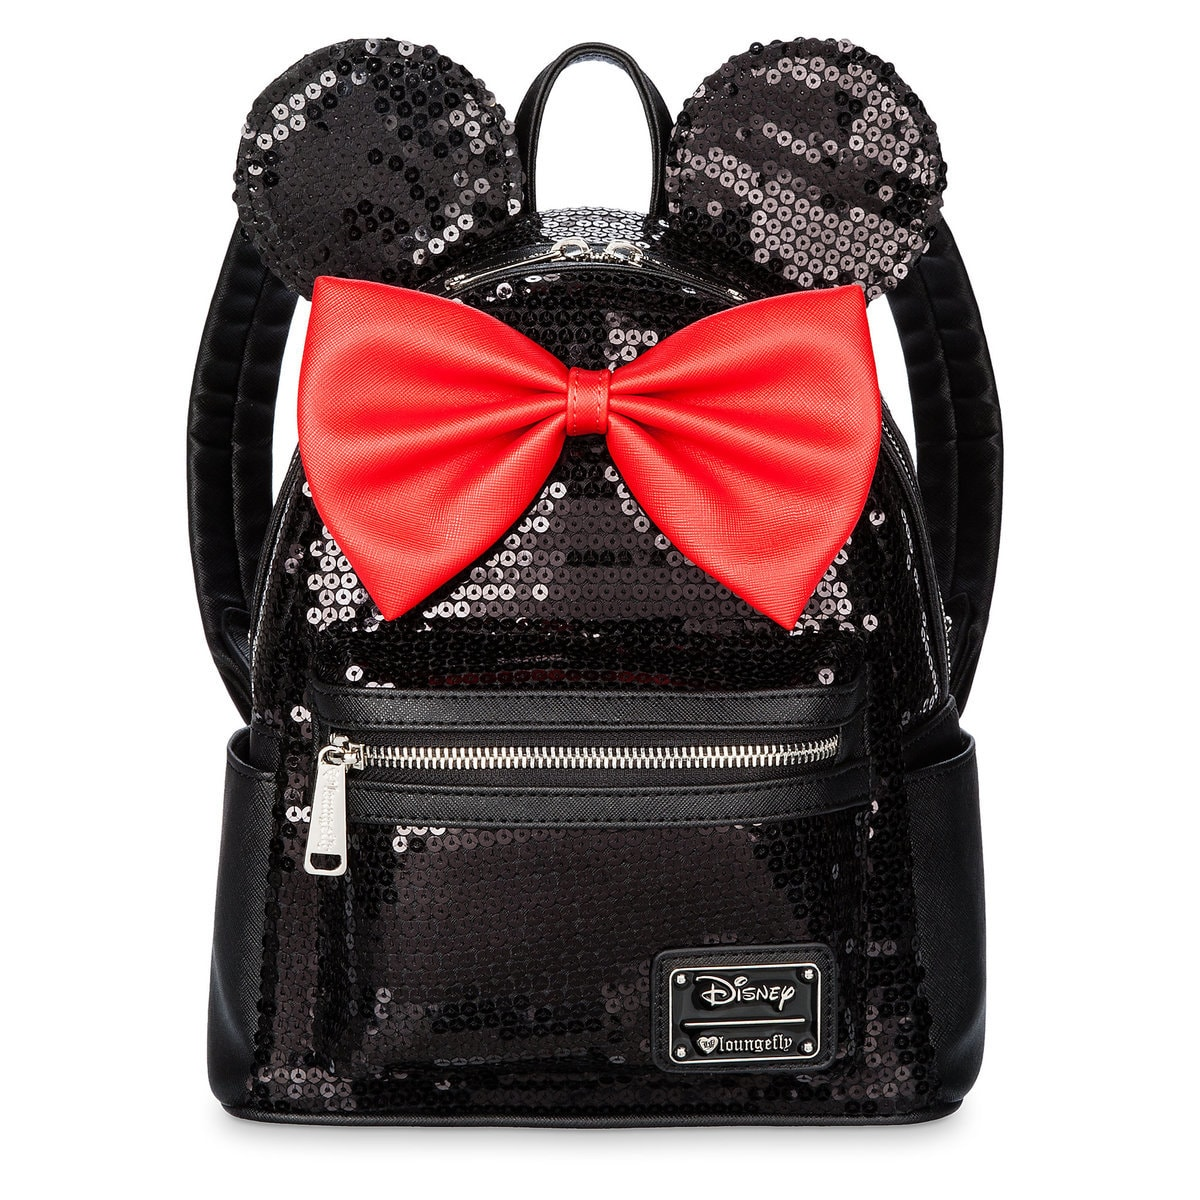 aecdd167e8 Product Image of Minnie Mouse Mini Backpack by Loungefly - Black Sequined    1